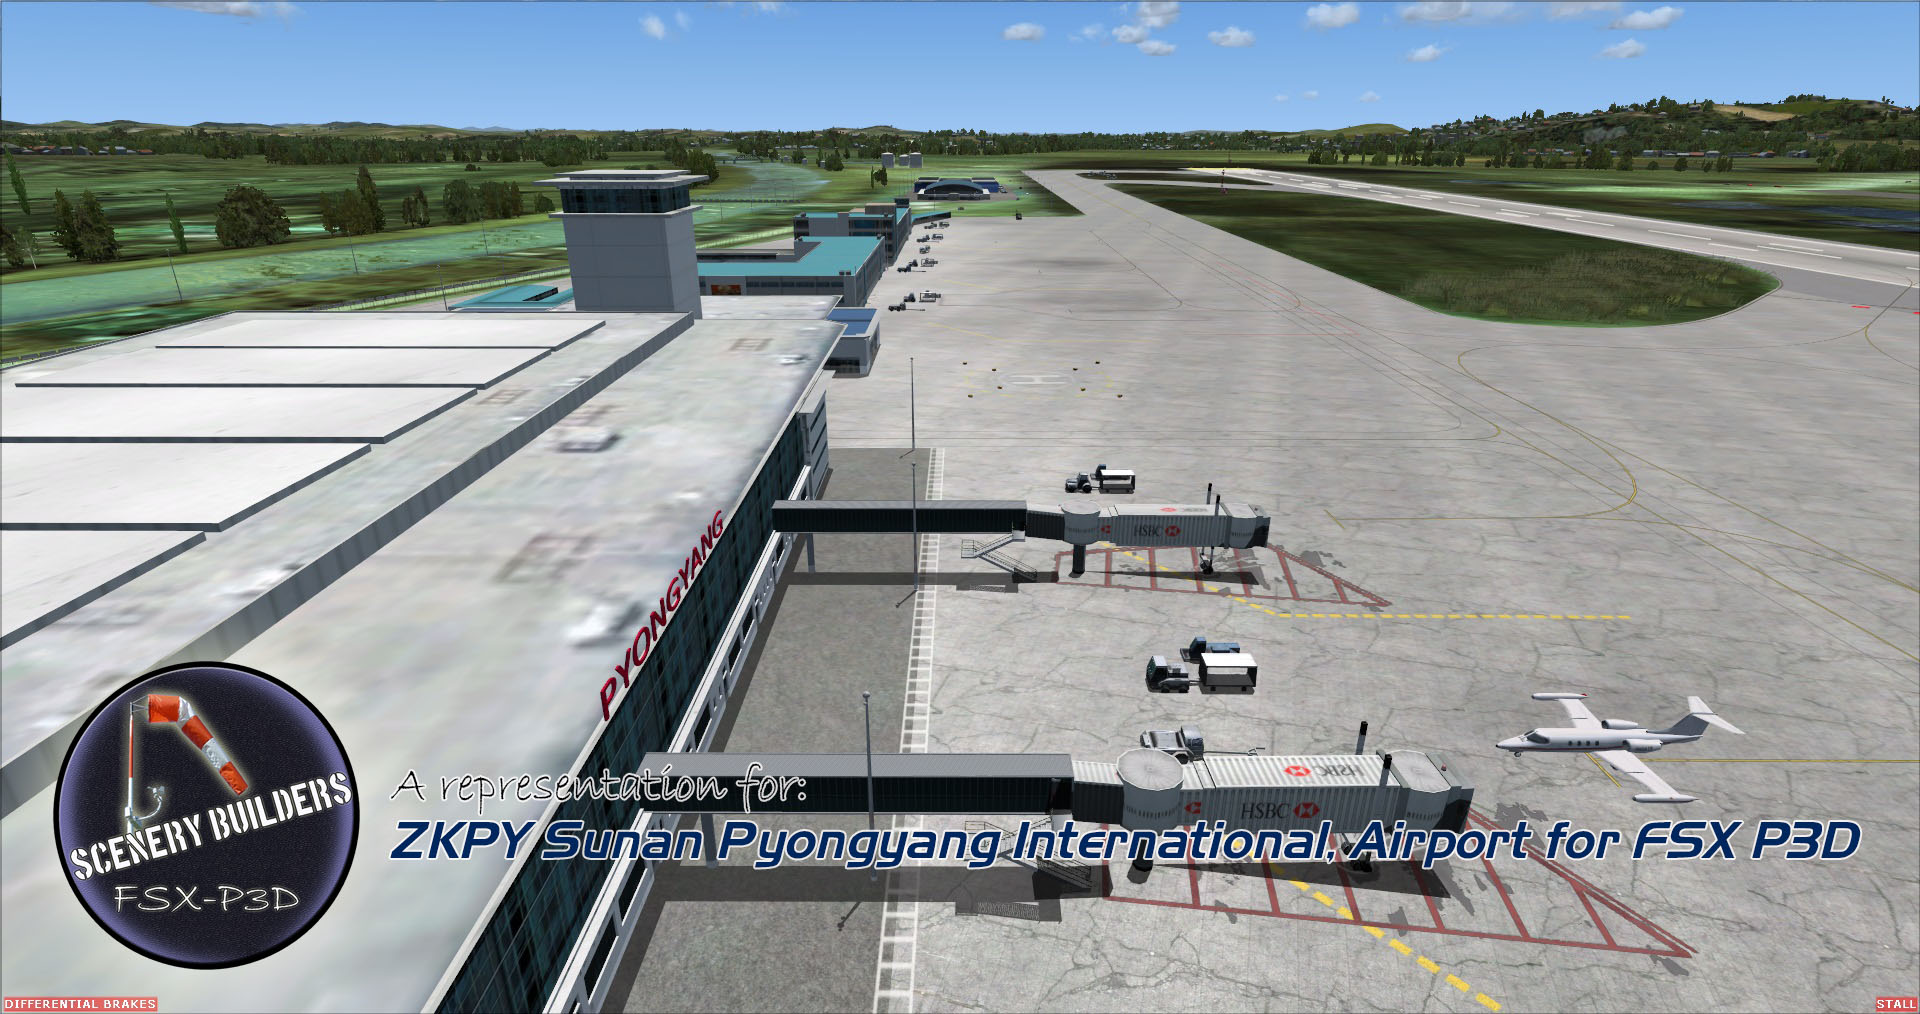 FSXCENERY - ZKPY SUNAN PYONGYANG INTERNATIONAL AIRPORT FSX P3D